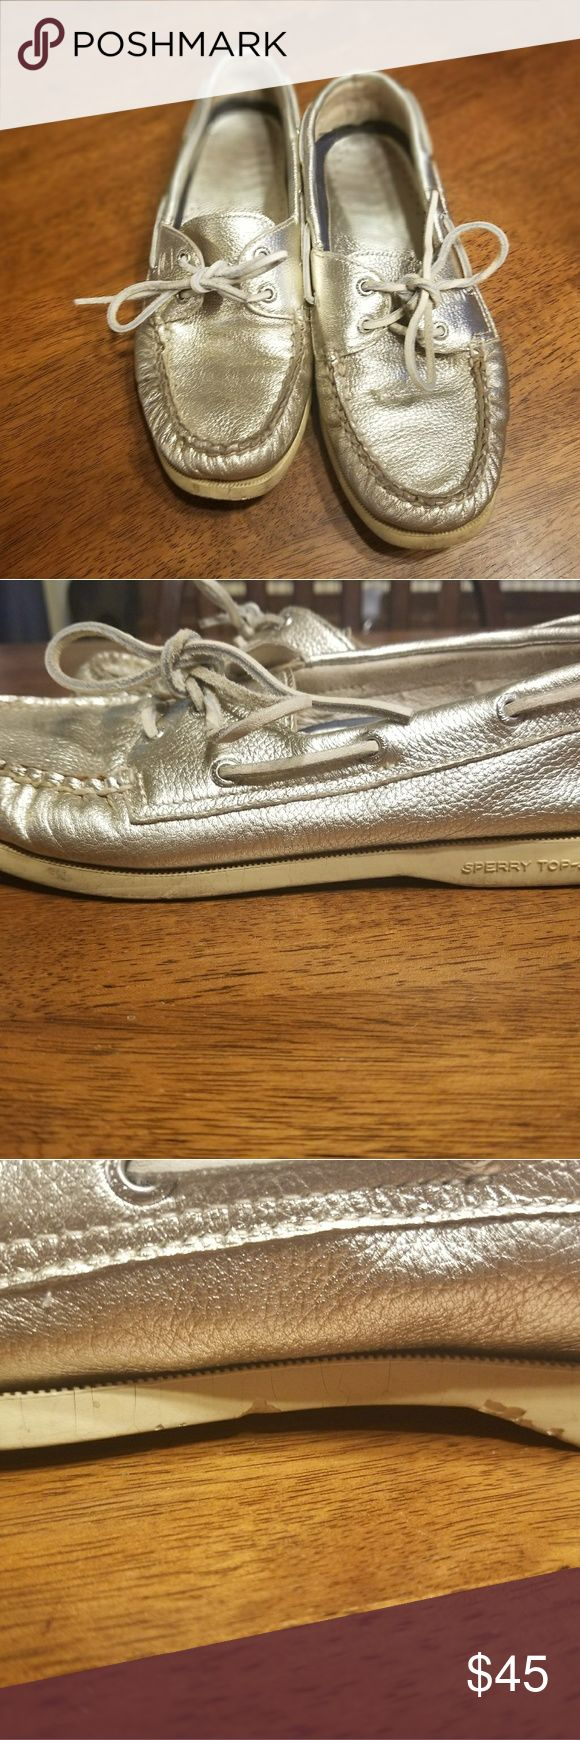 Gold Metallic Sperry Top-siders Dont miss out on the metallic gold Sperry Top-Sider Boat shoes! These are very comfortable and have the perfect amount of STYLE!  Condition: Used condition, any damage is pictured. Condition: $98.00 Size 7.5 M  In love with these shoes??... Make an offer, or add to a bundle and I will send you a personal offer! QUICK SHIPPER! Click link in bio to learn how to make more sales! xoxo Sperry Shoes Flats & Loafers